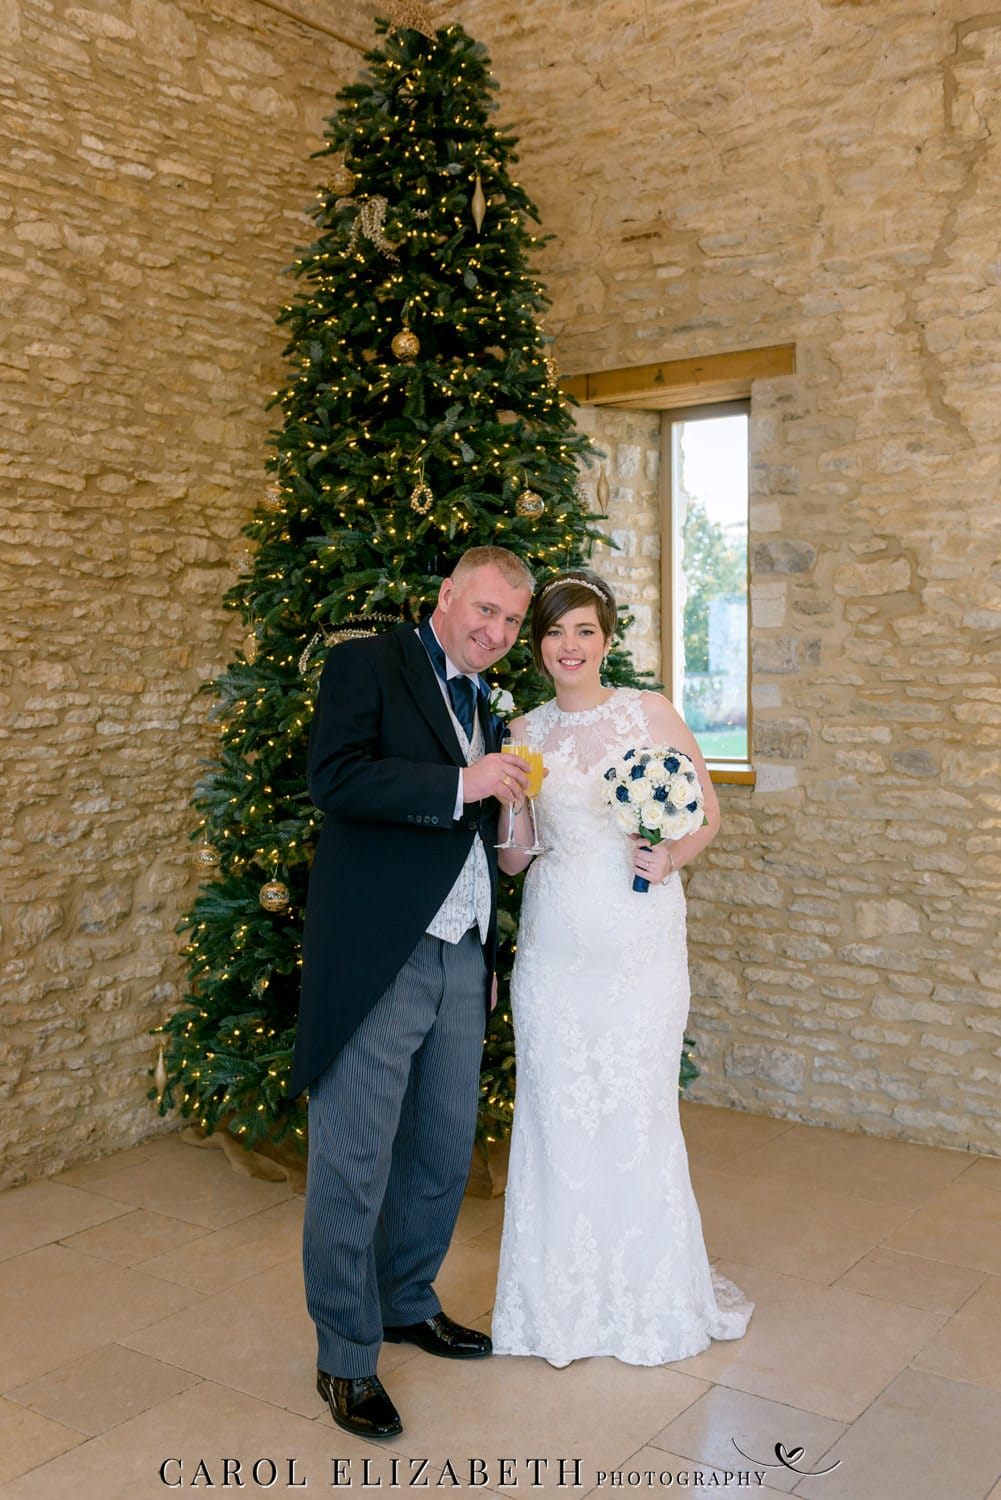 Christmas wedding photography at Caswell House in Oxfordshire